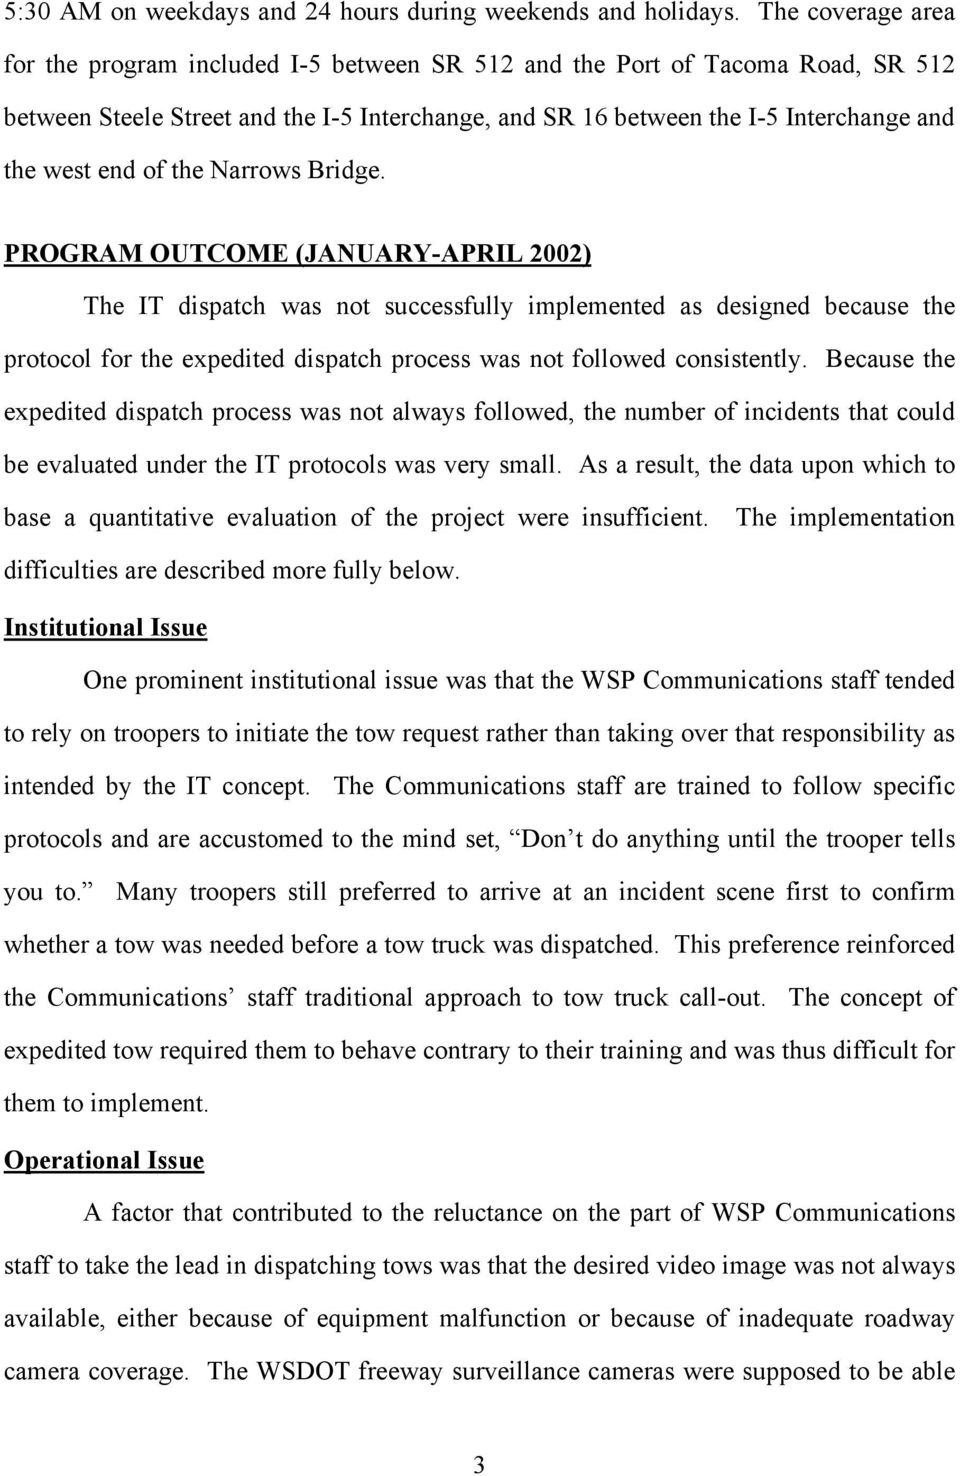 EVALUATION OF THE INSTANT TOW DISPATCH PILOT PROGRAM IN THE